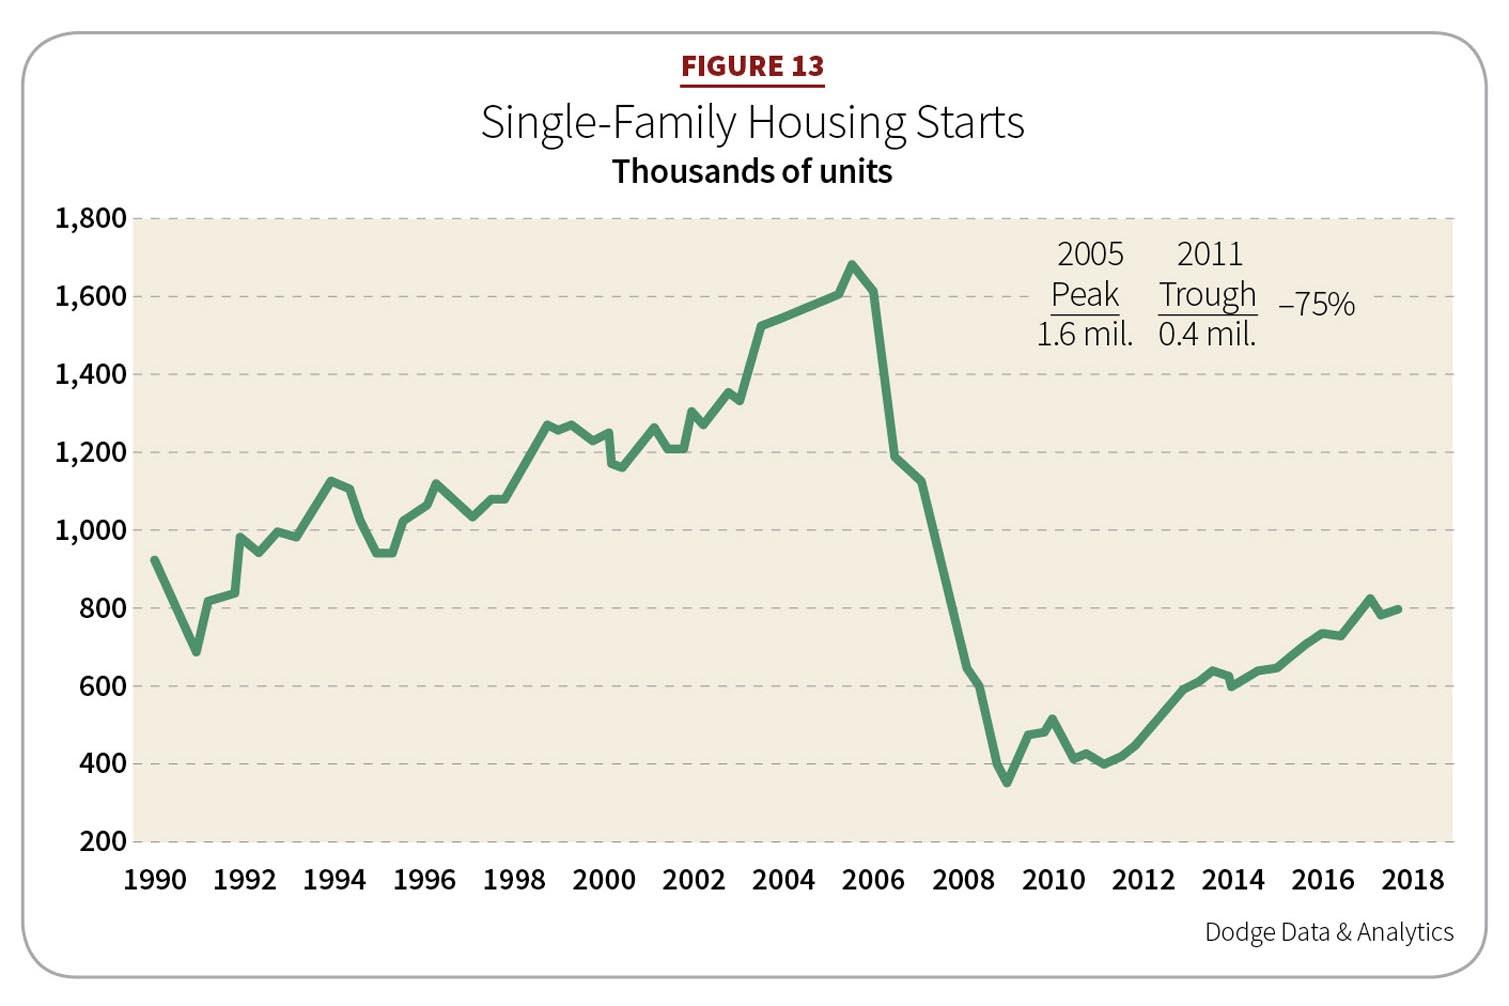 Figure 13: Single-Family Housing Starts